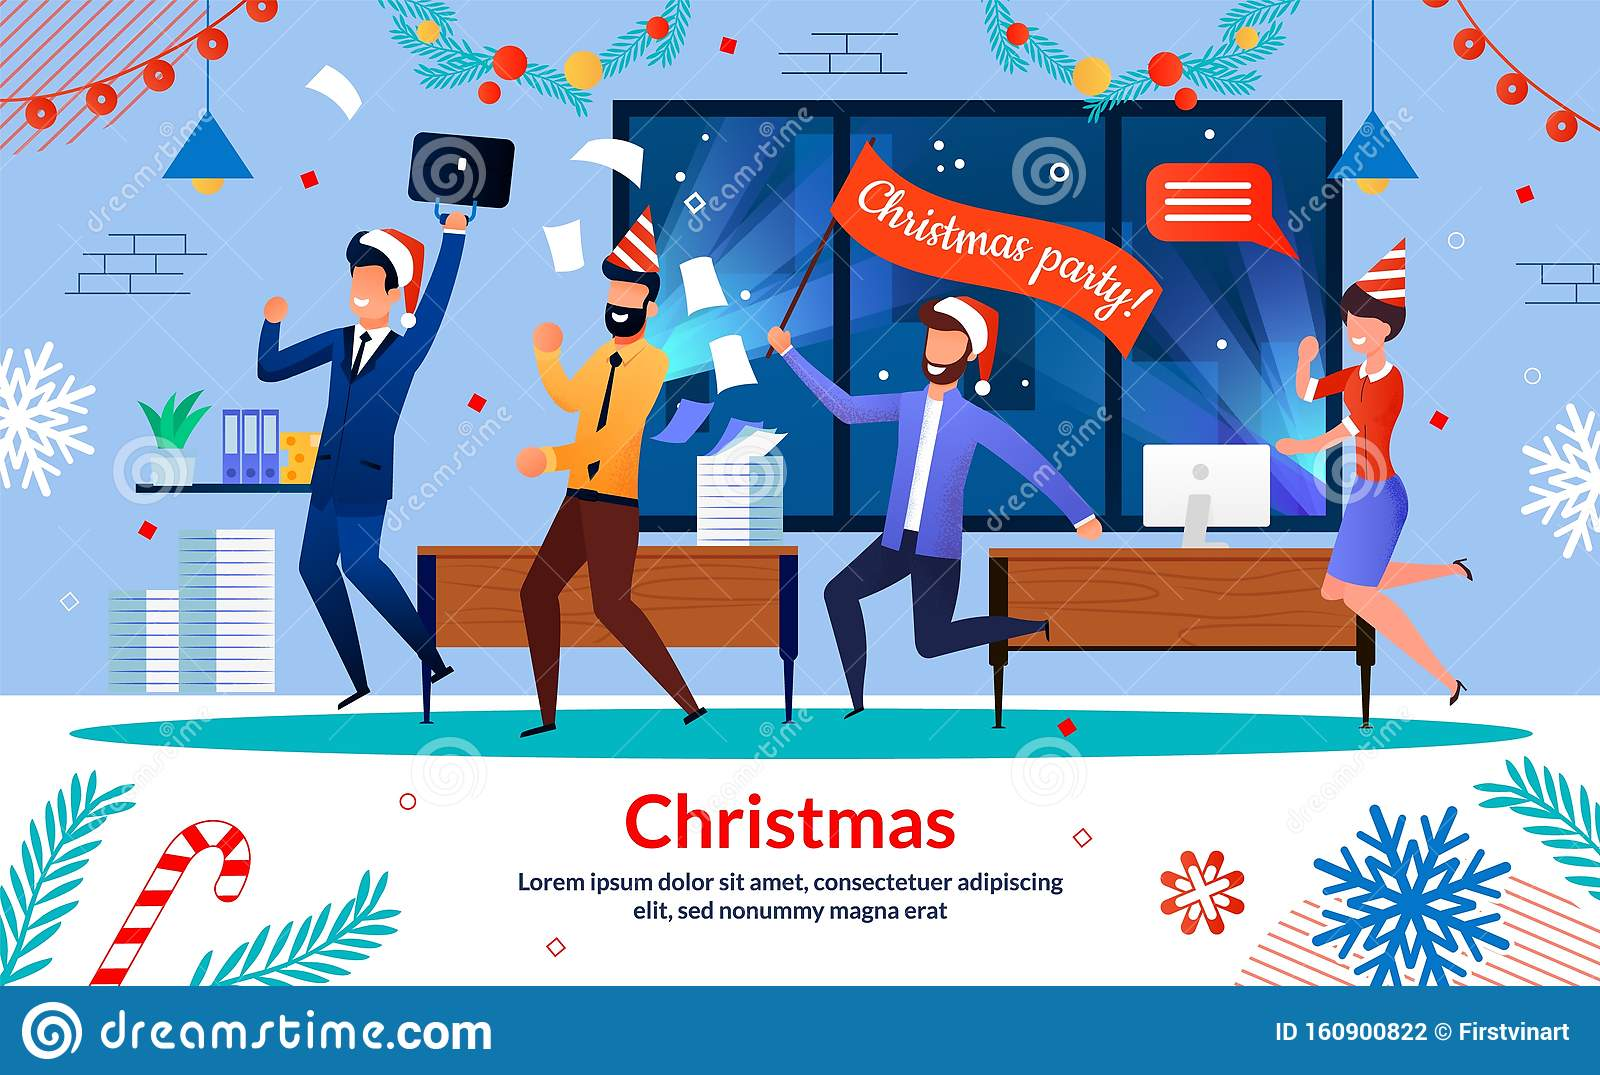 Company Employees Christmas Party Vector Banner Stock ...